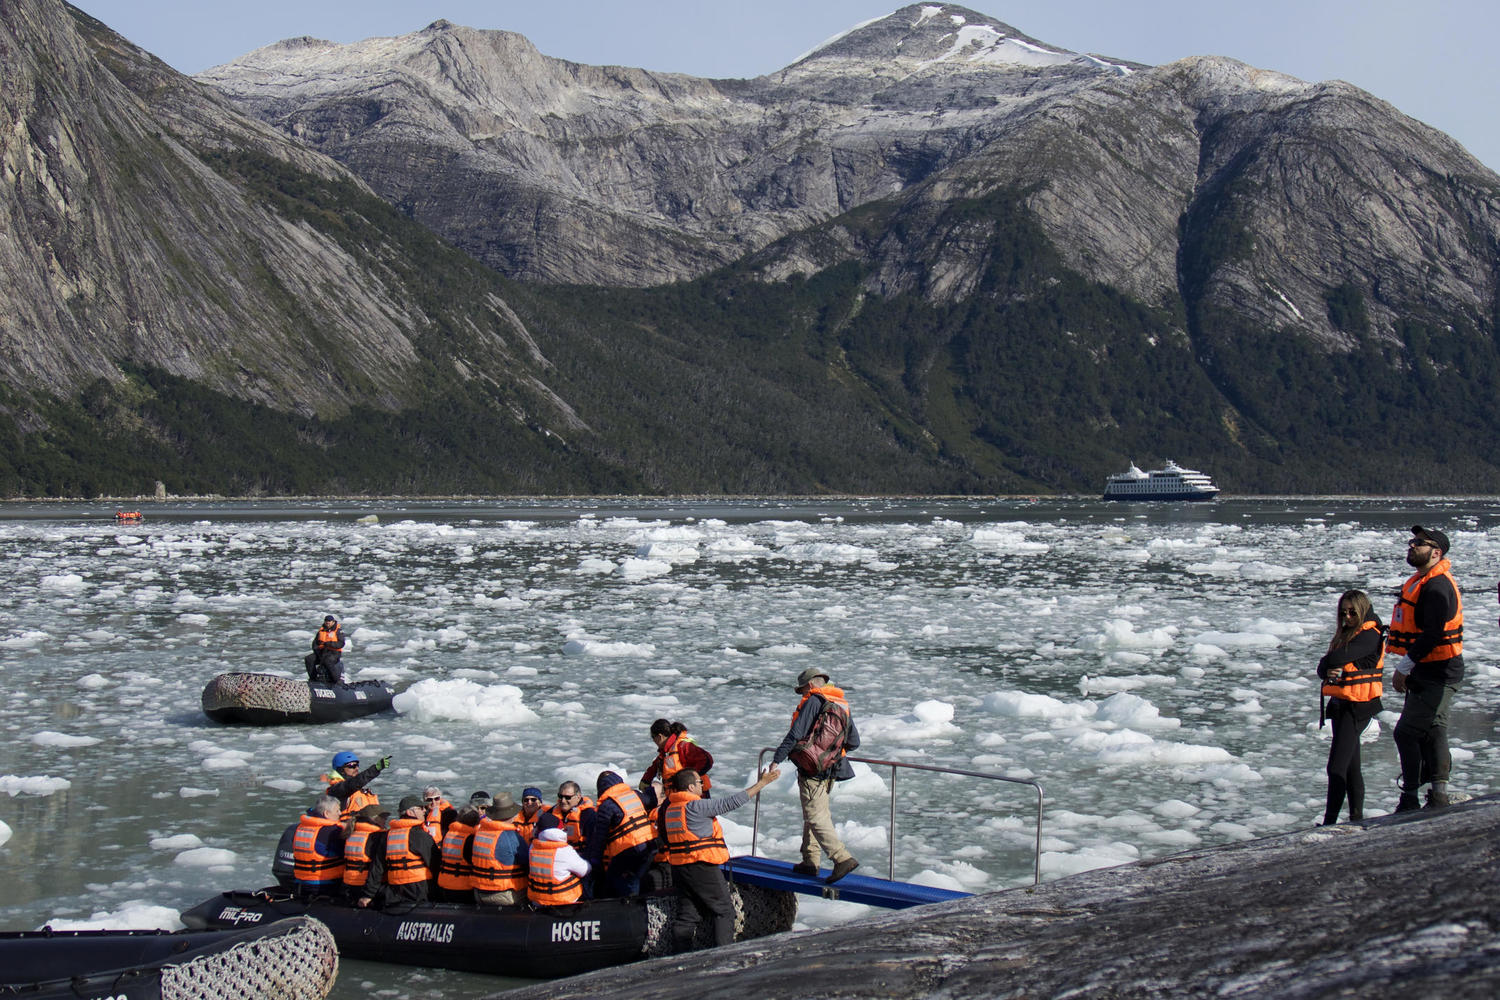 Boarding zodiacs for return to Australis from Pia Glacier